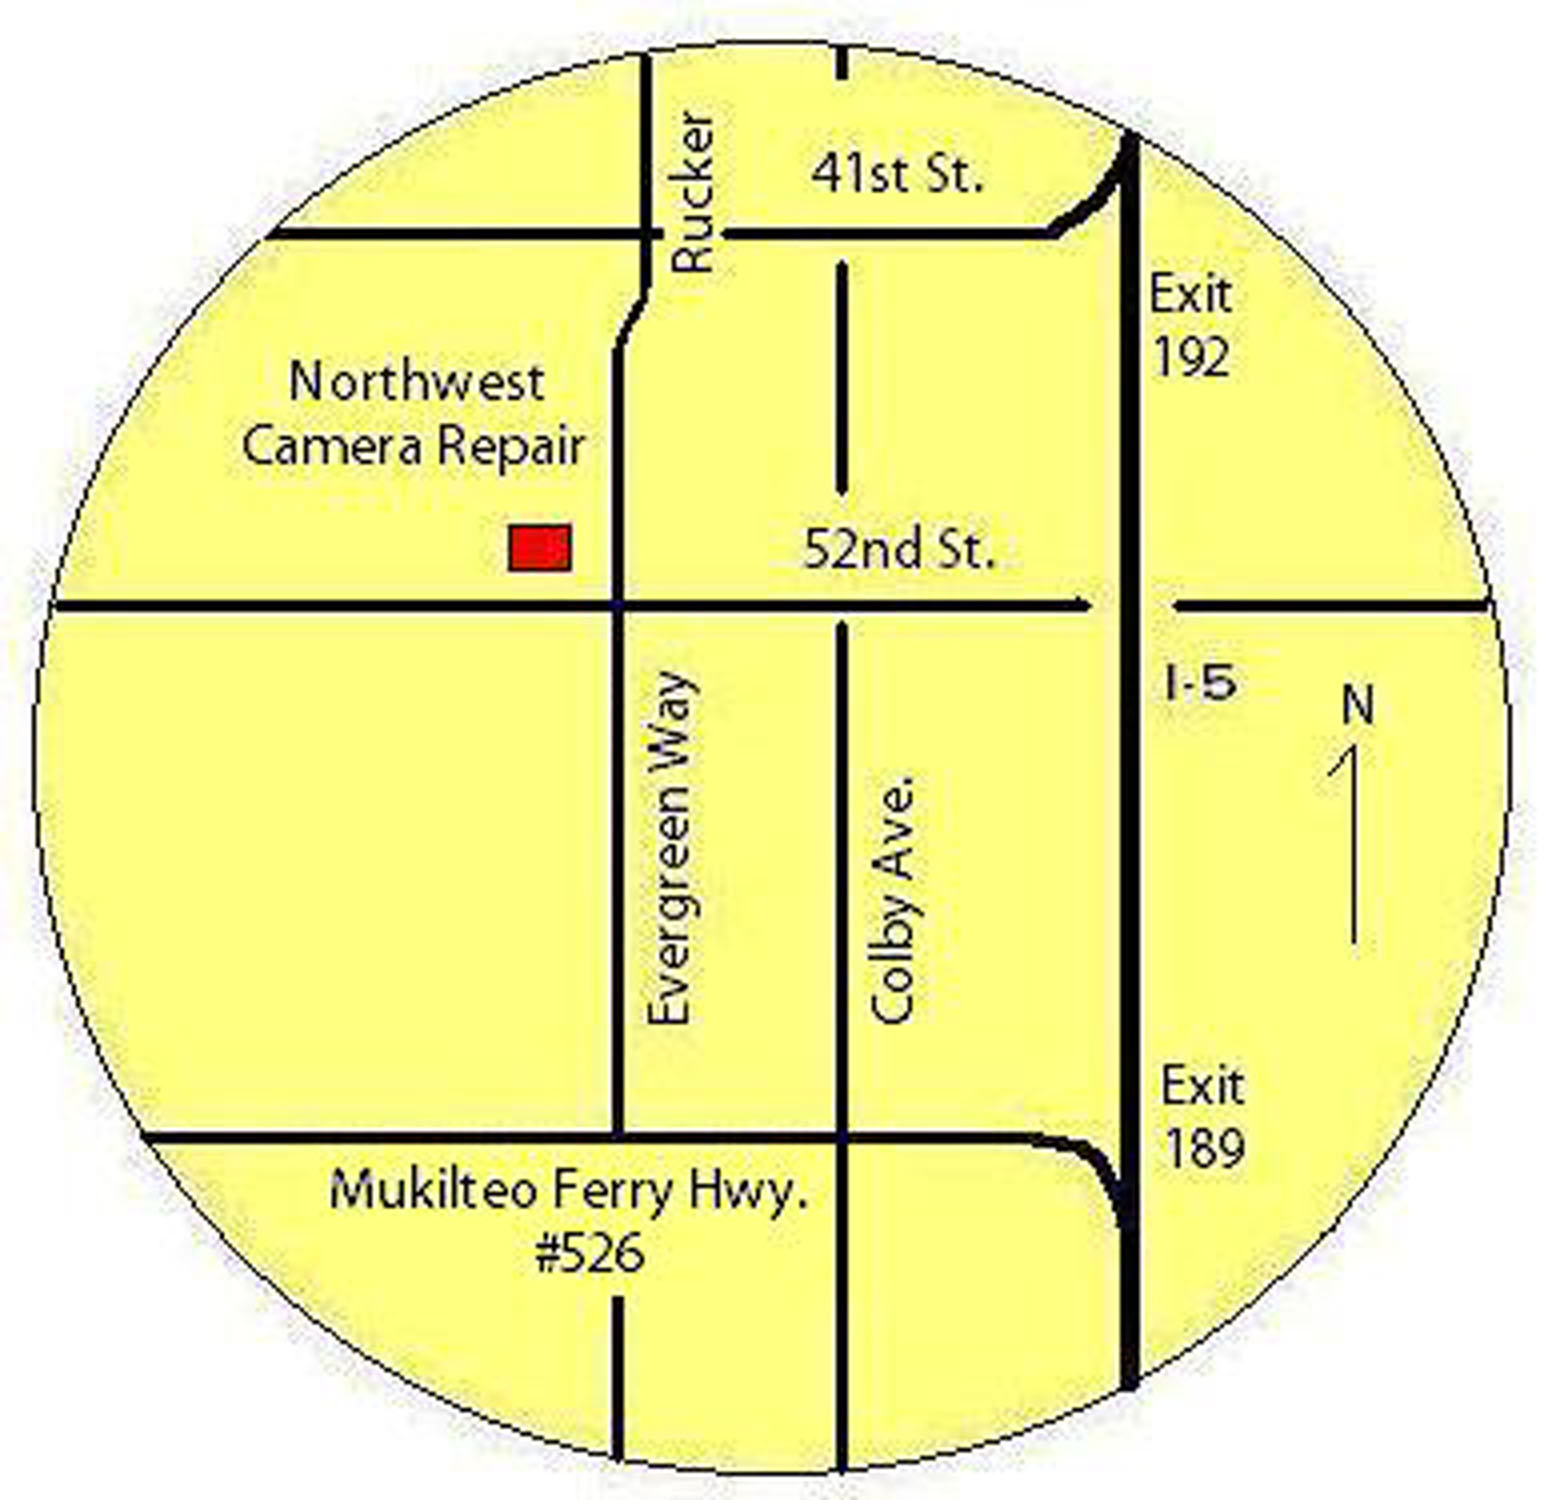 Map of Northwest Camera Repair's location.